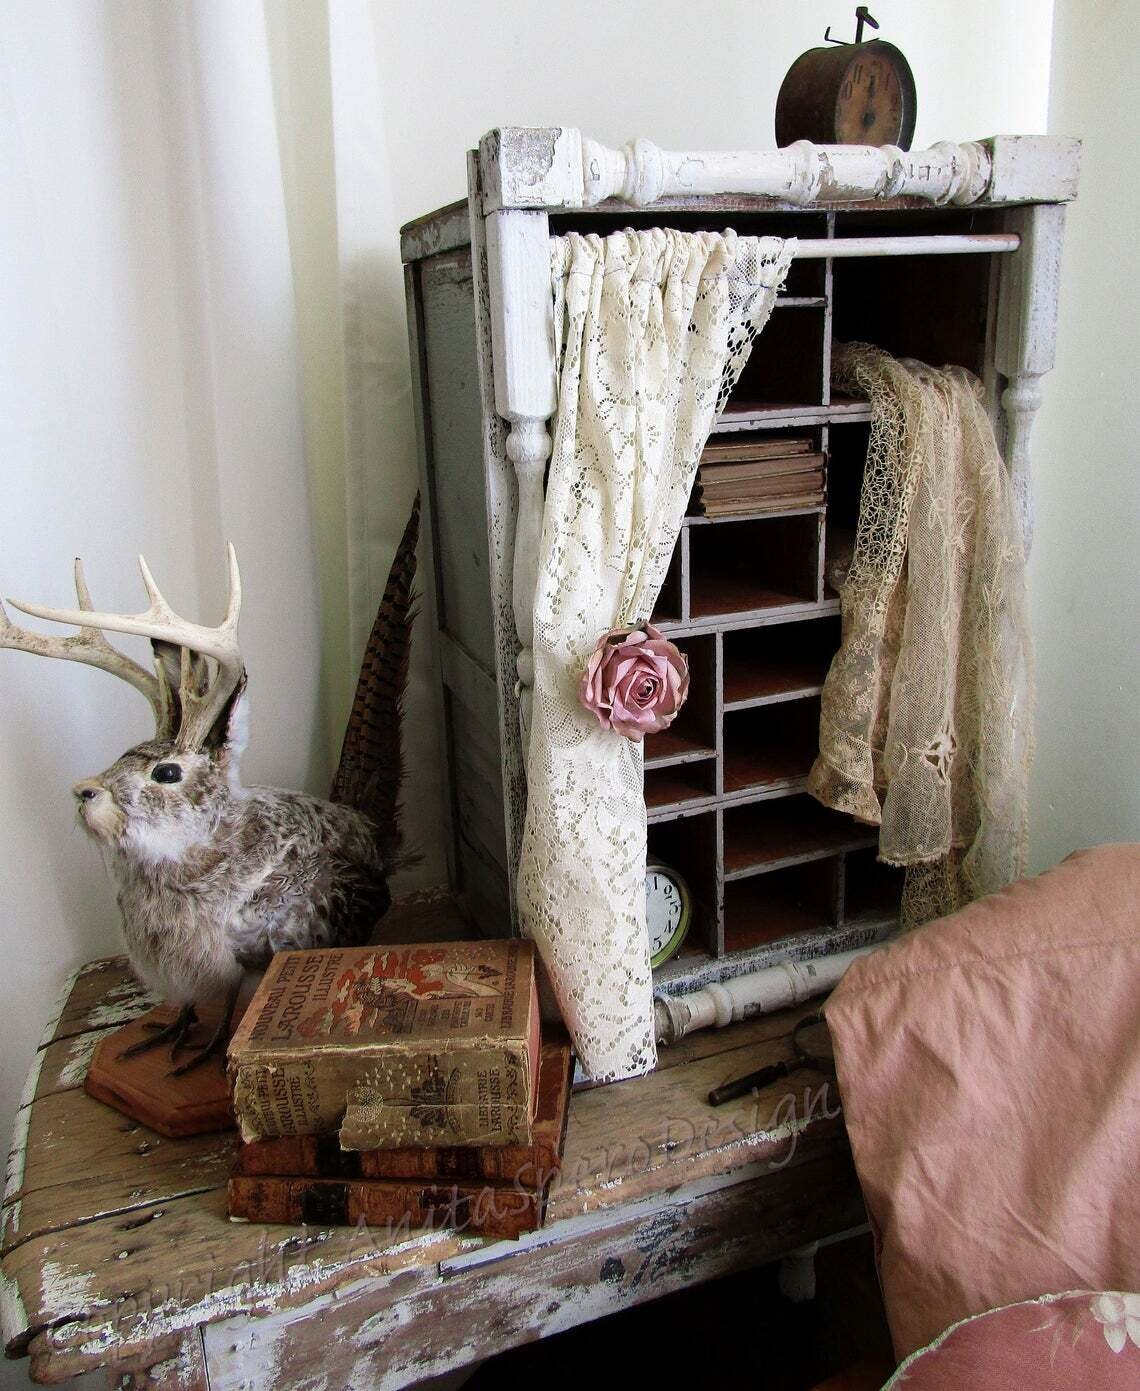 Large deep old tools cubby, farmhouse cottage organizer with lace curtain